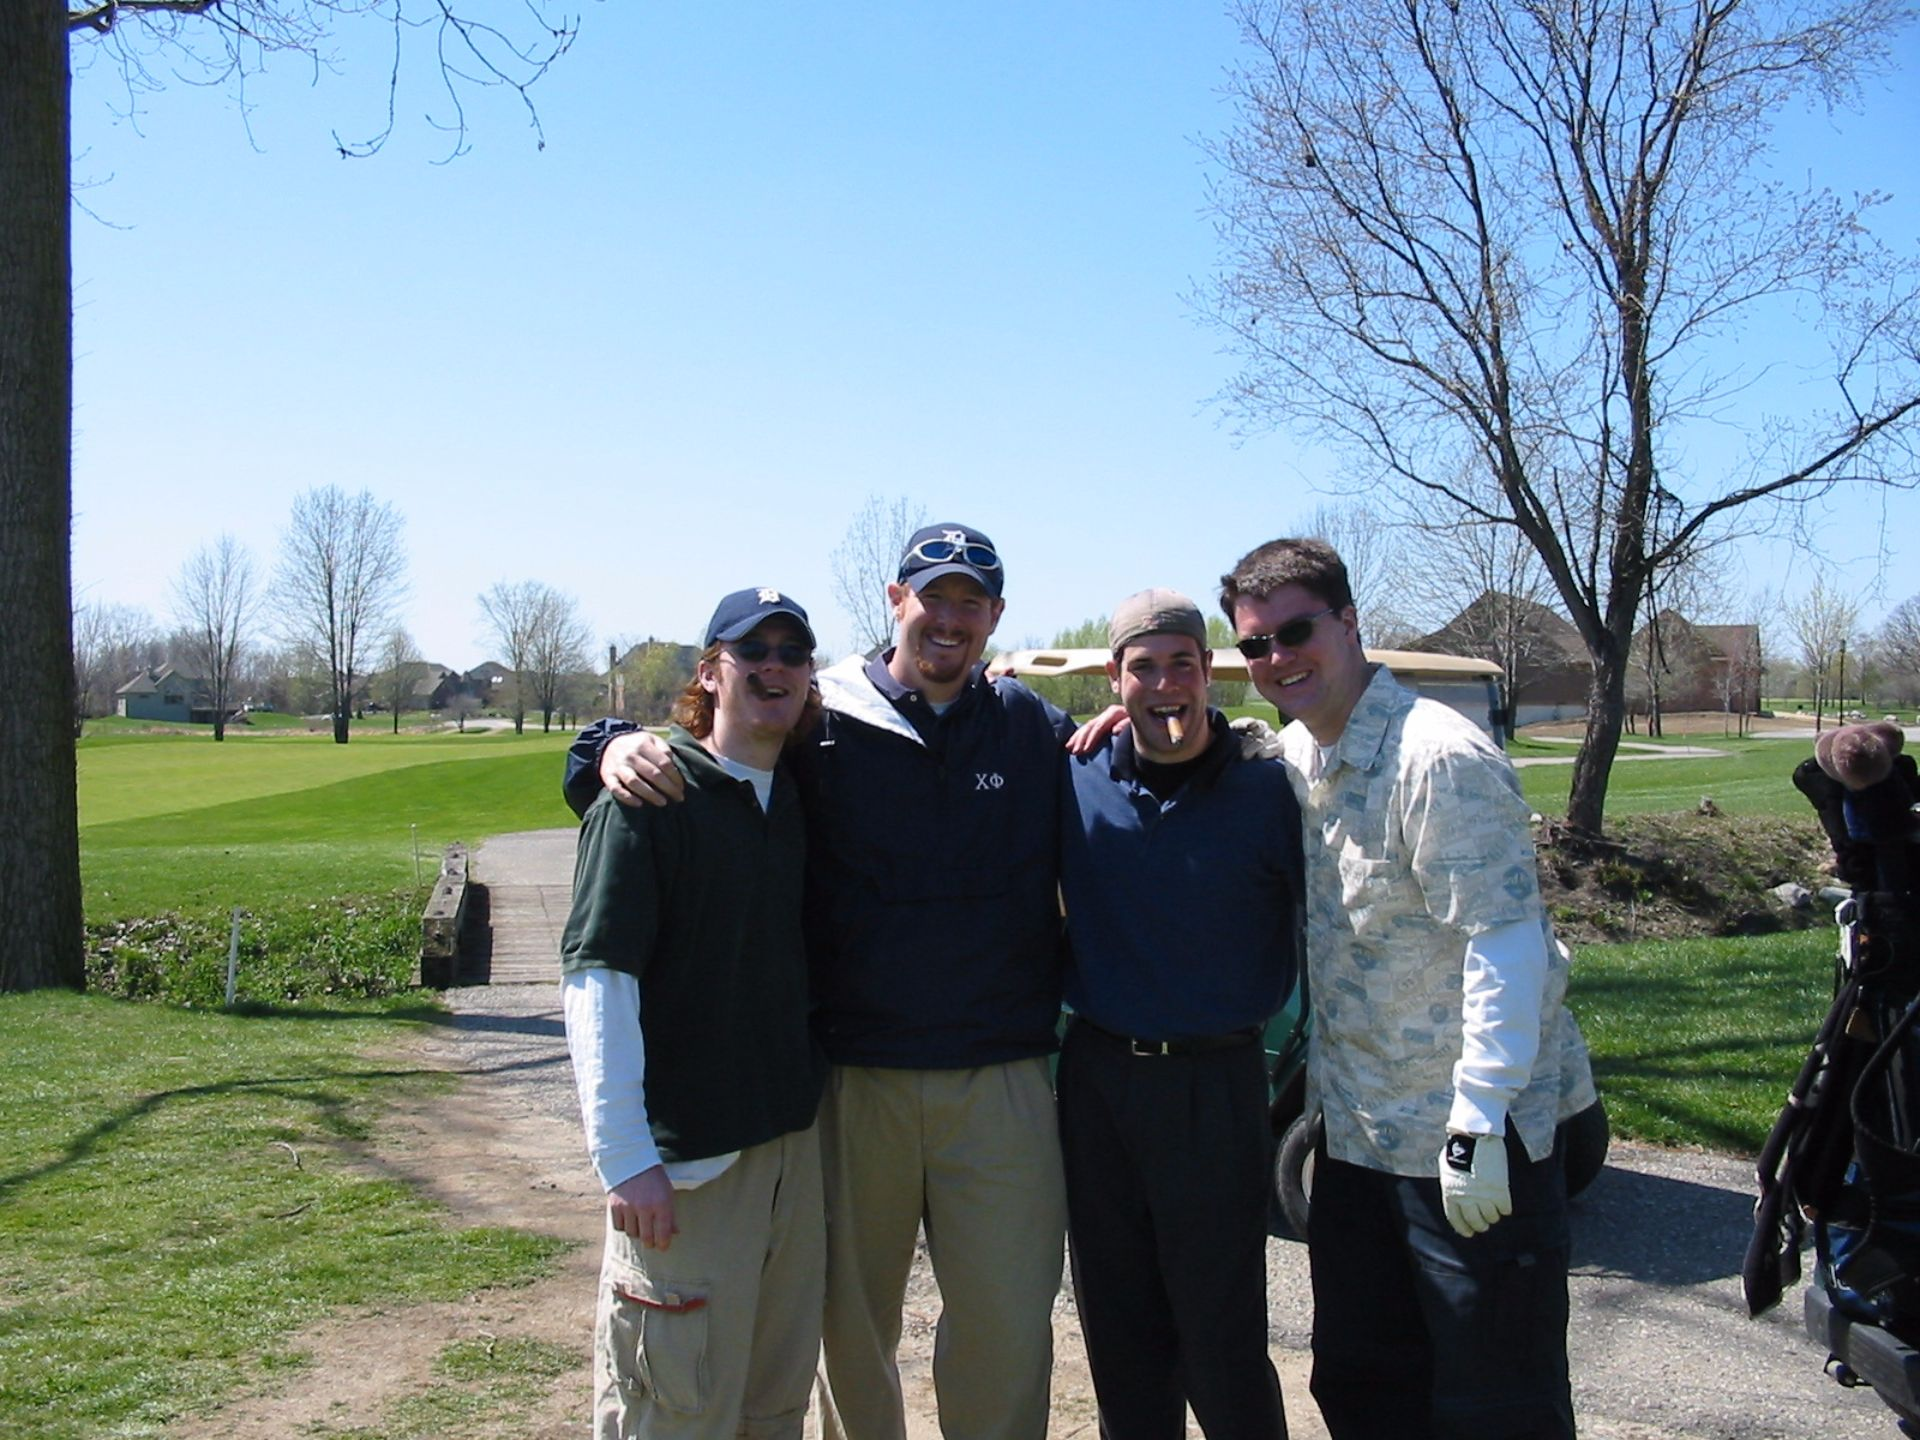 golf_outing_104-0418_IMG.jpg